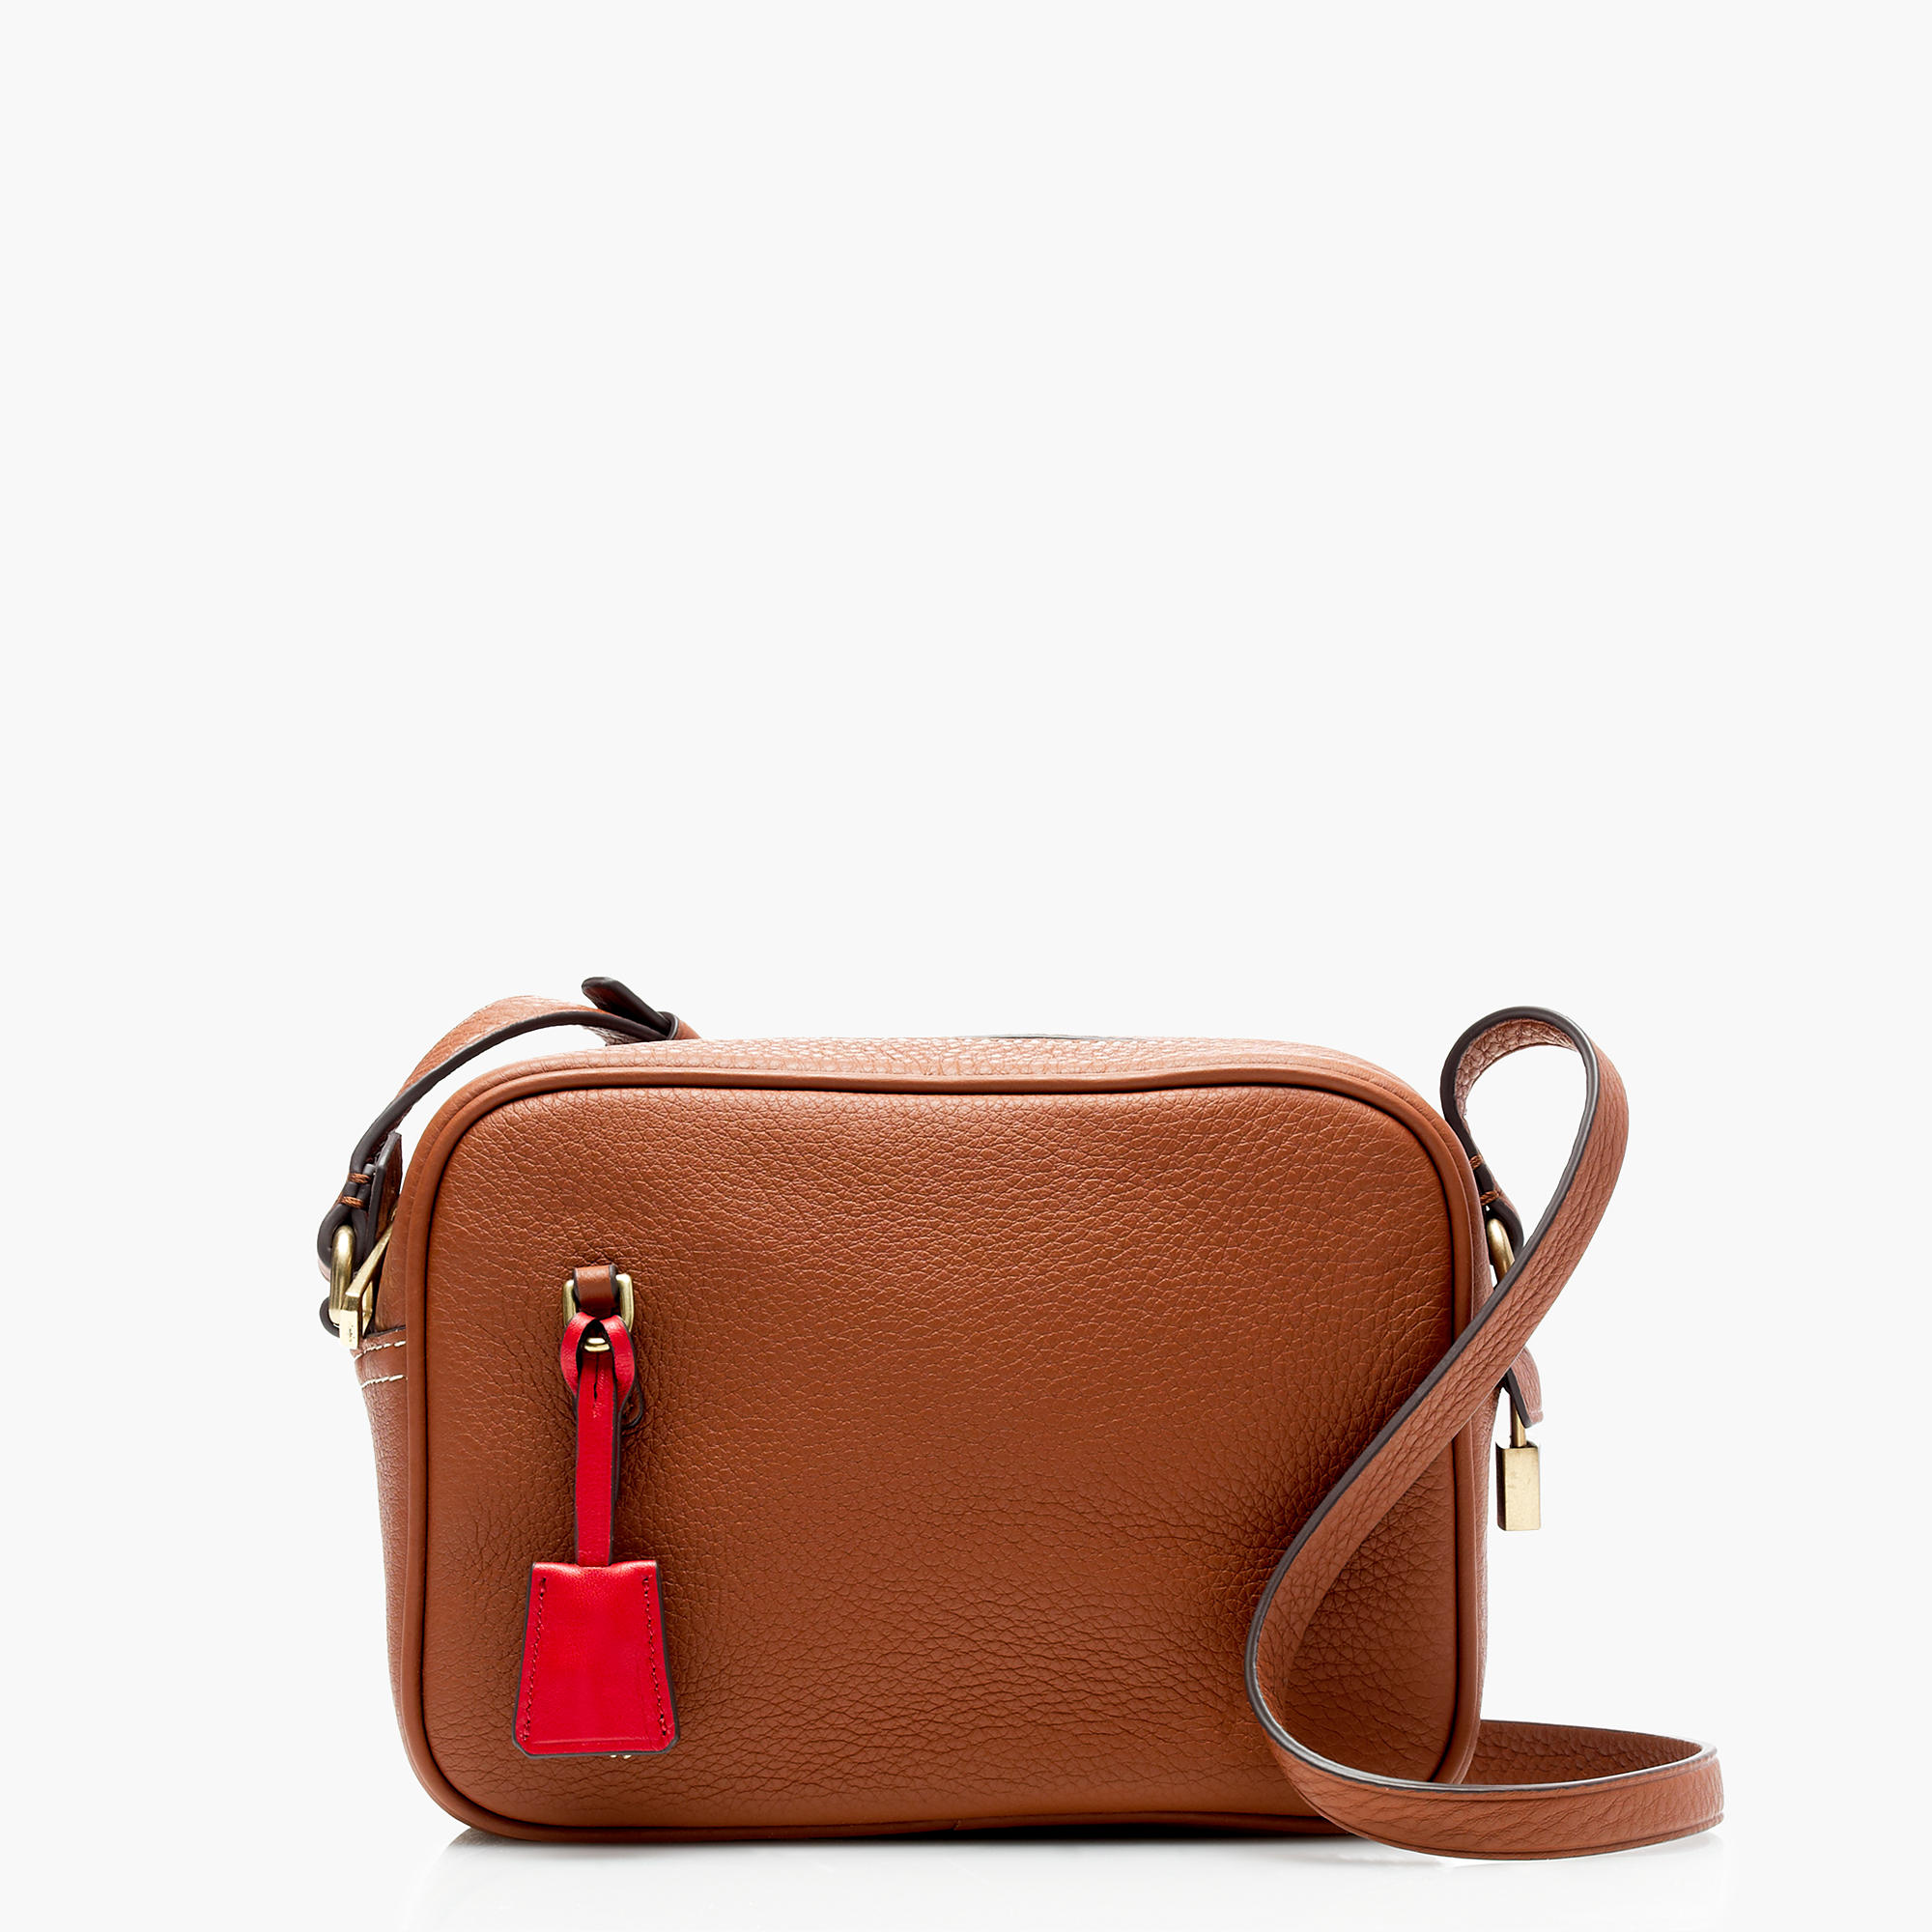 J.Crew Signet Bags in Italian Leather, Roasted Chestnut